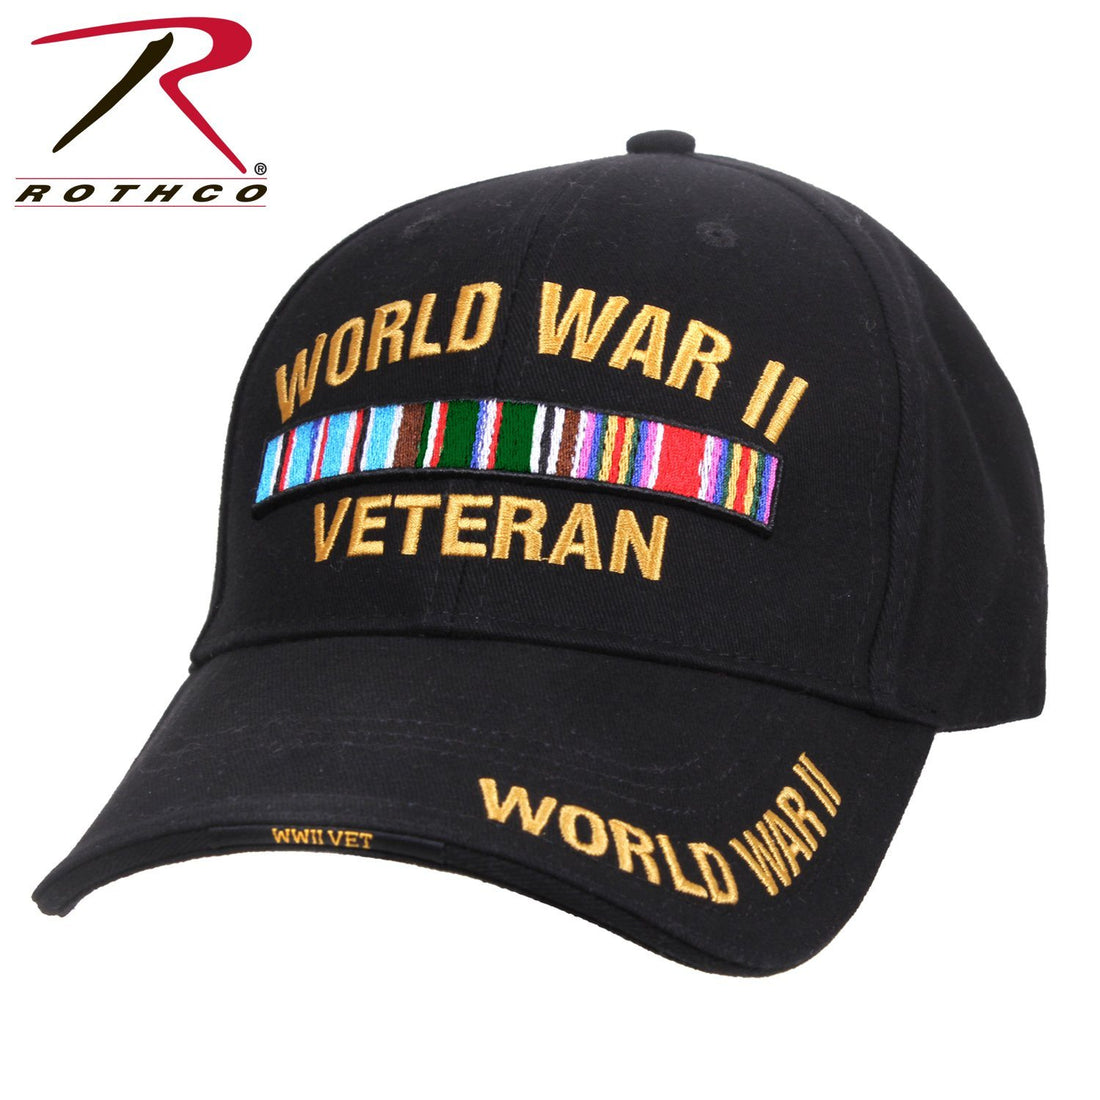 USMC cap by Marine Corps Direct called Rothco WWII Veteran Deluxe Low Profile Cap